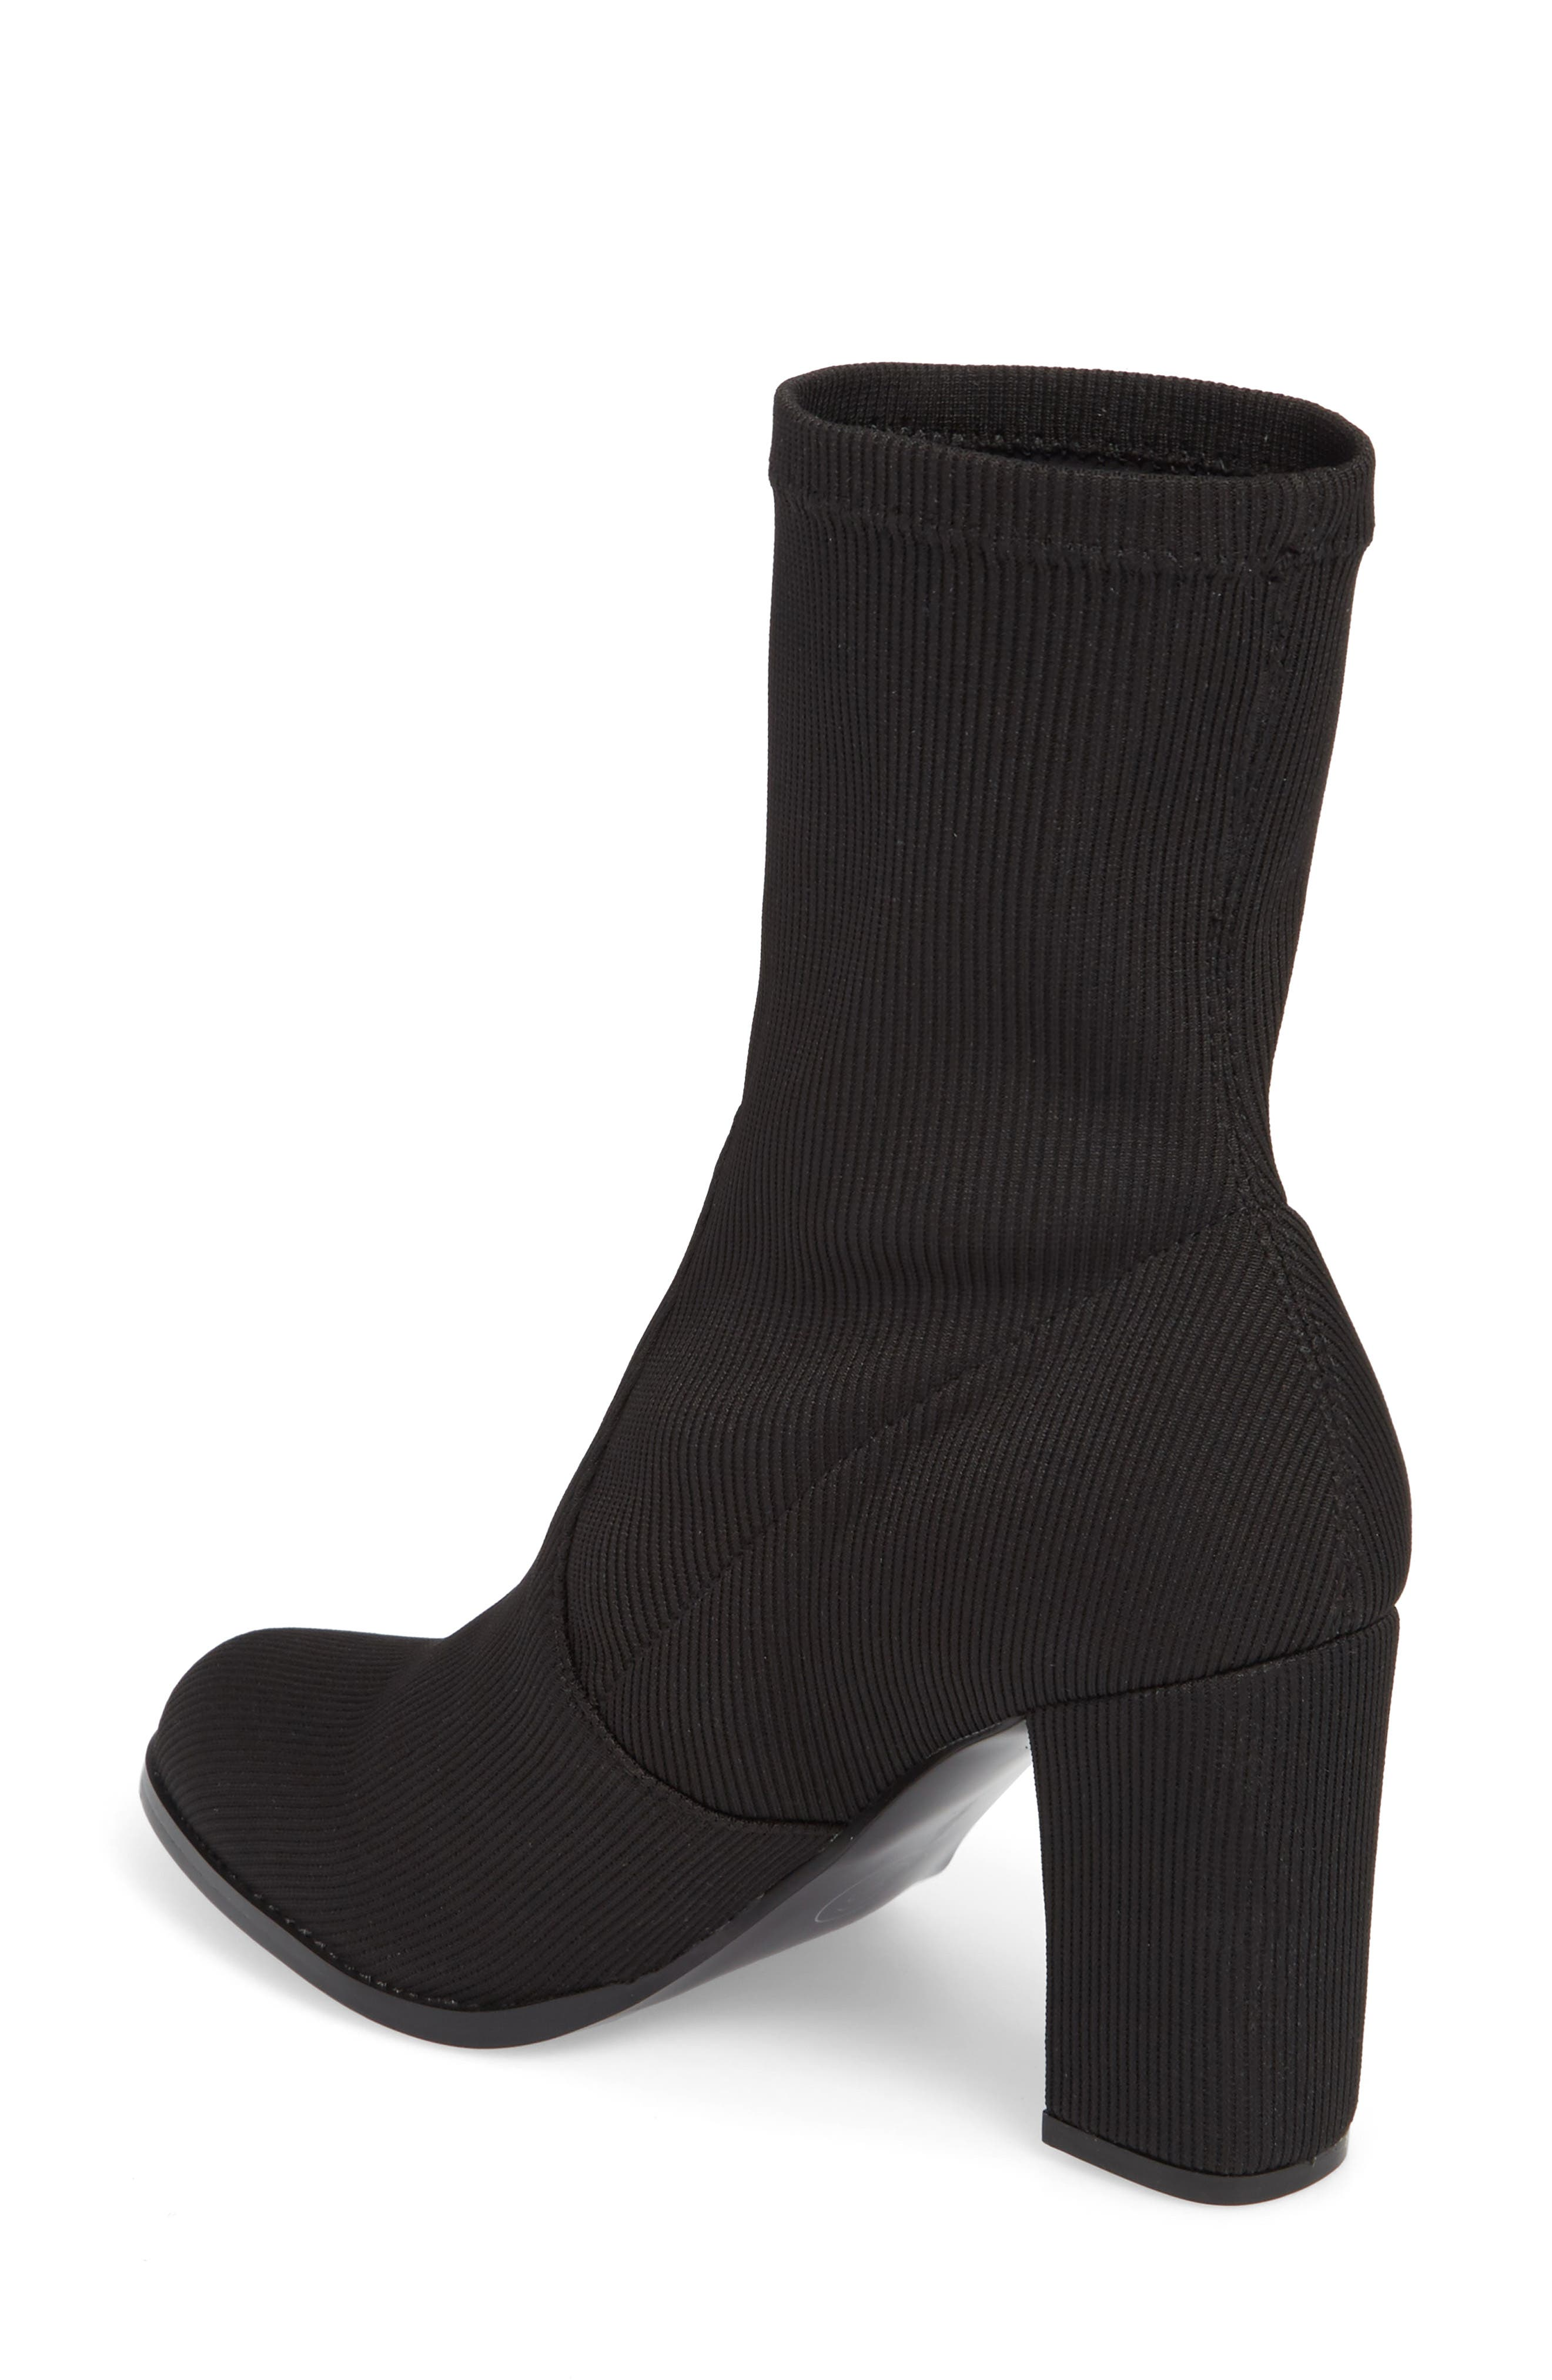 CHINESE LAUNDRY, Craze Bootie, Alternate thumbnail 2, color, BLACK FABRIC